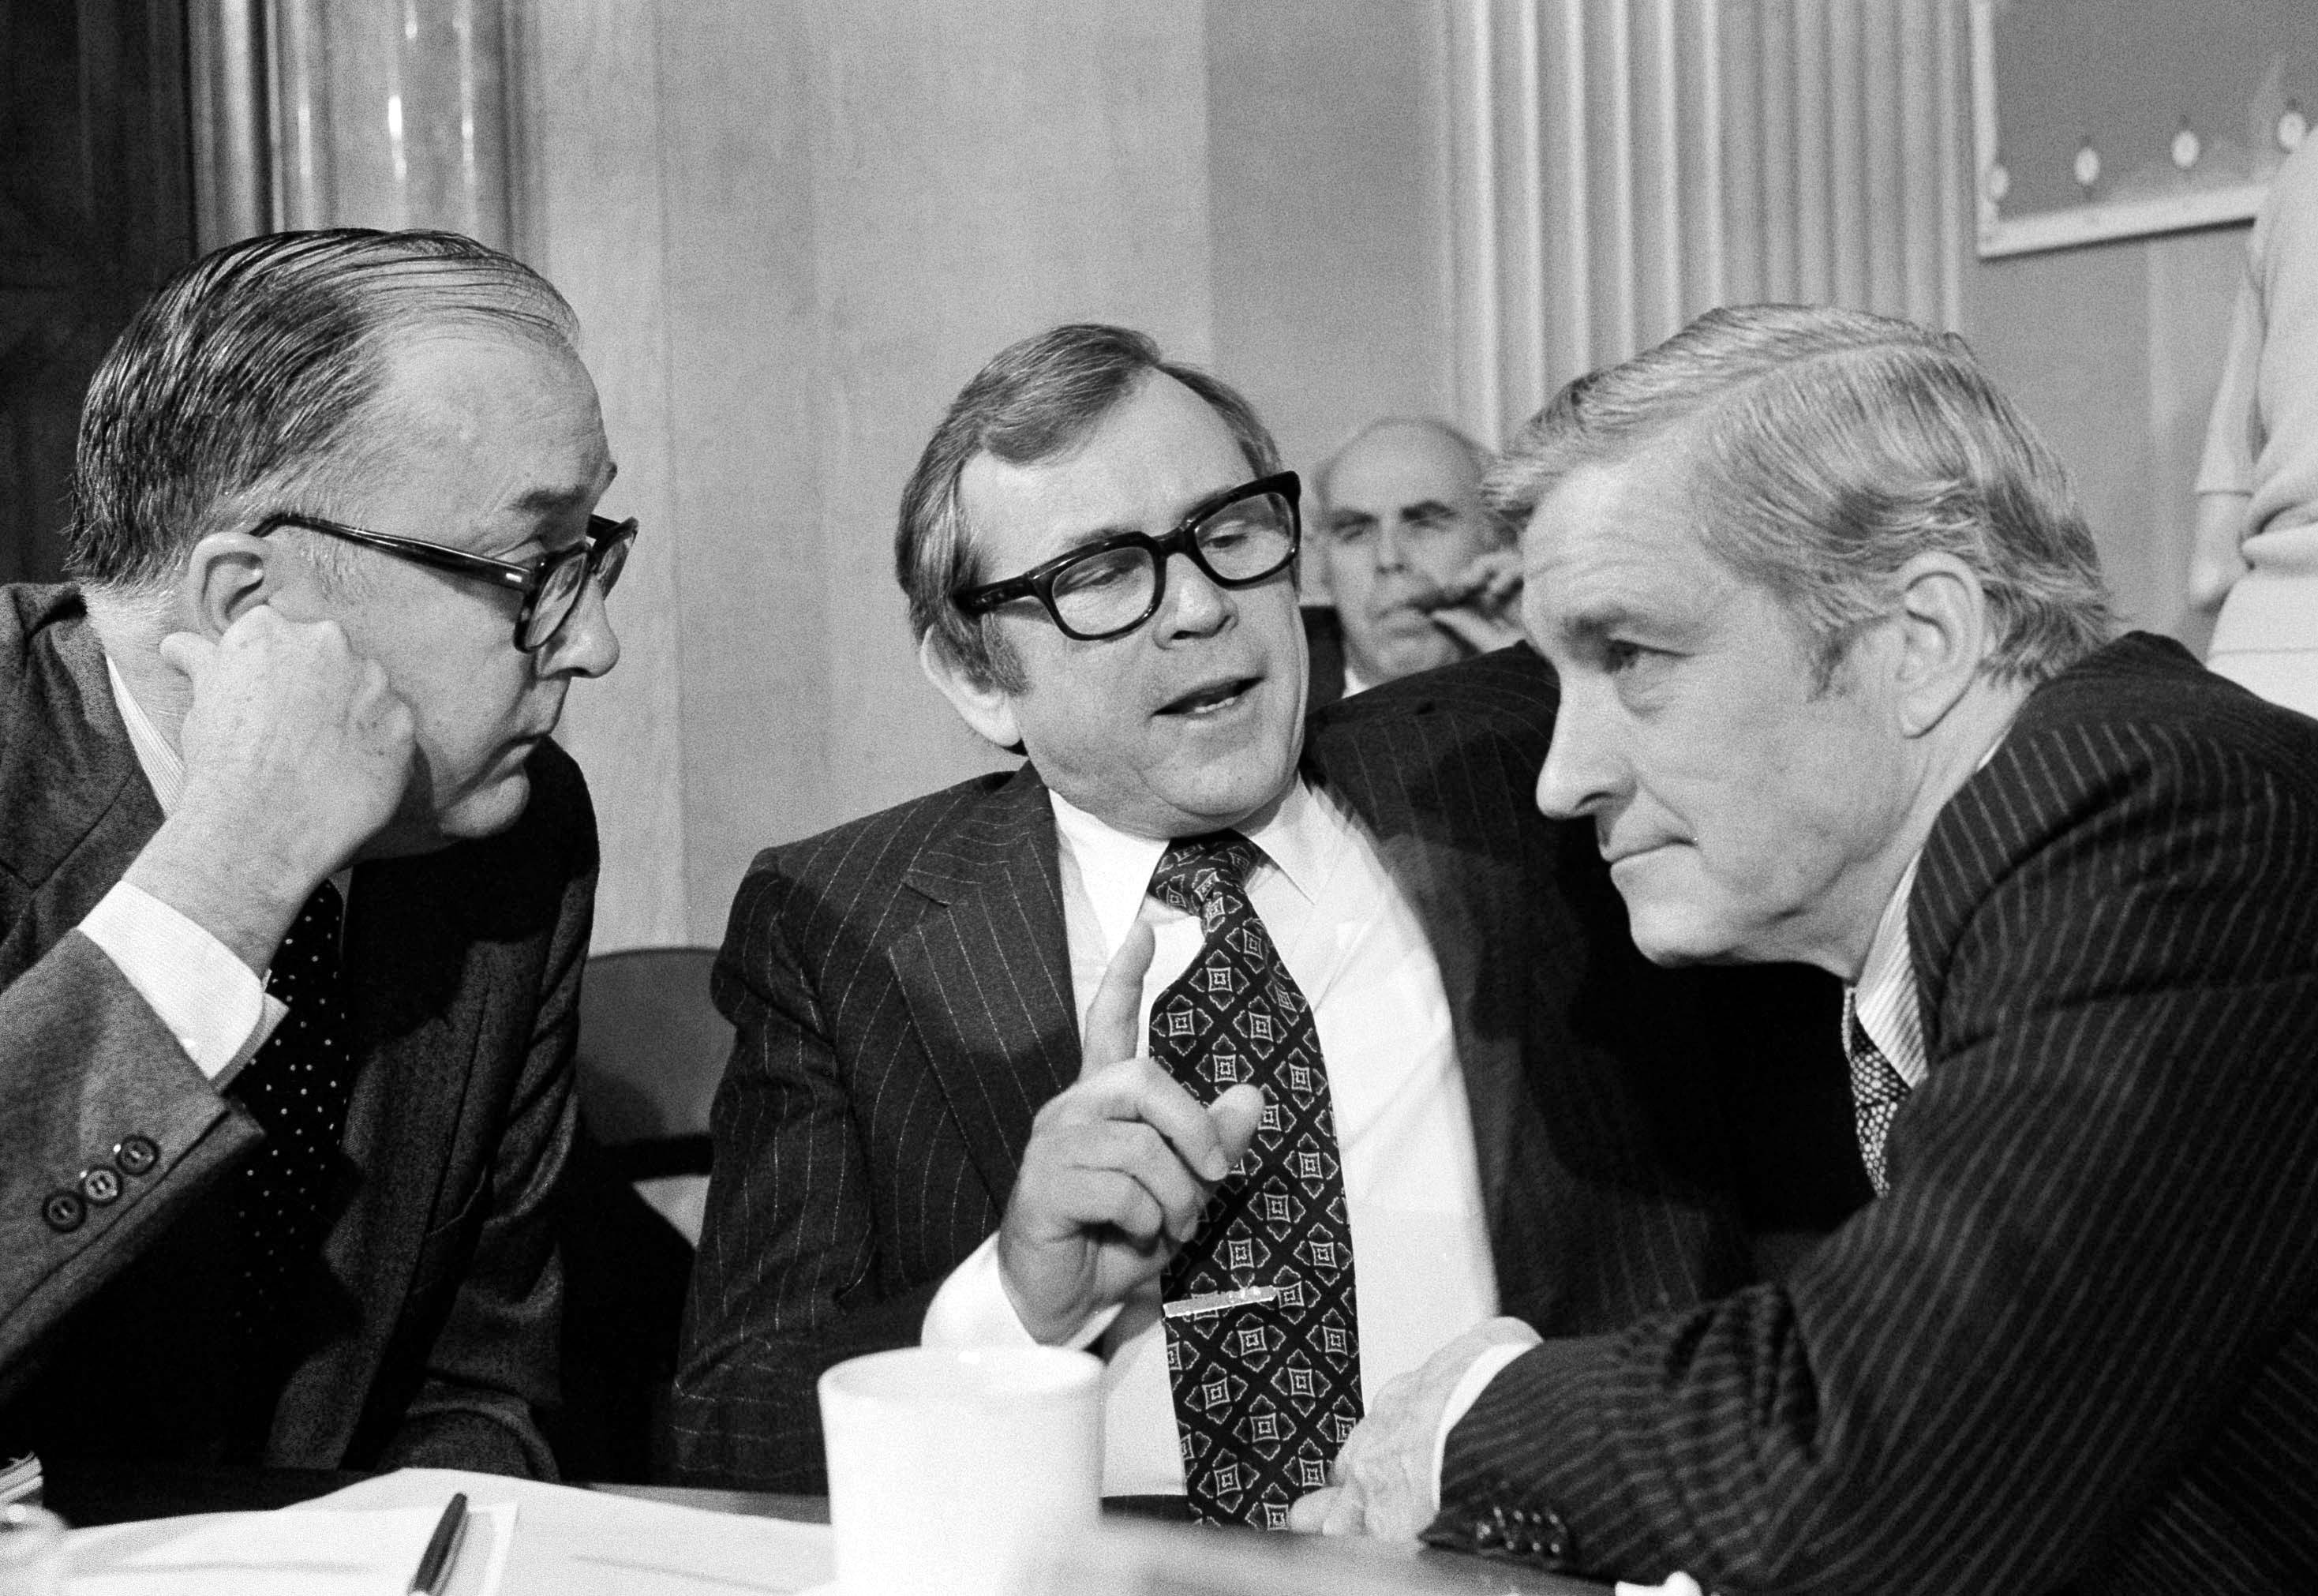 Senate Foreign Relations Committee members, from left, Sen. Jesse Helms, a North Carolina Republican, Sen. Howard Baker, a Tennessee Republican, and Sen. Charles Percy, an Illinois Republican, discuss a vote on the SALT II treaty Nov. 9, 1979.